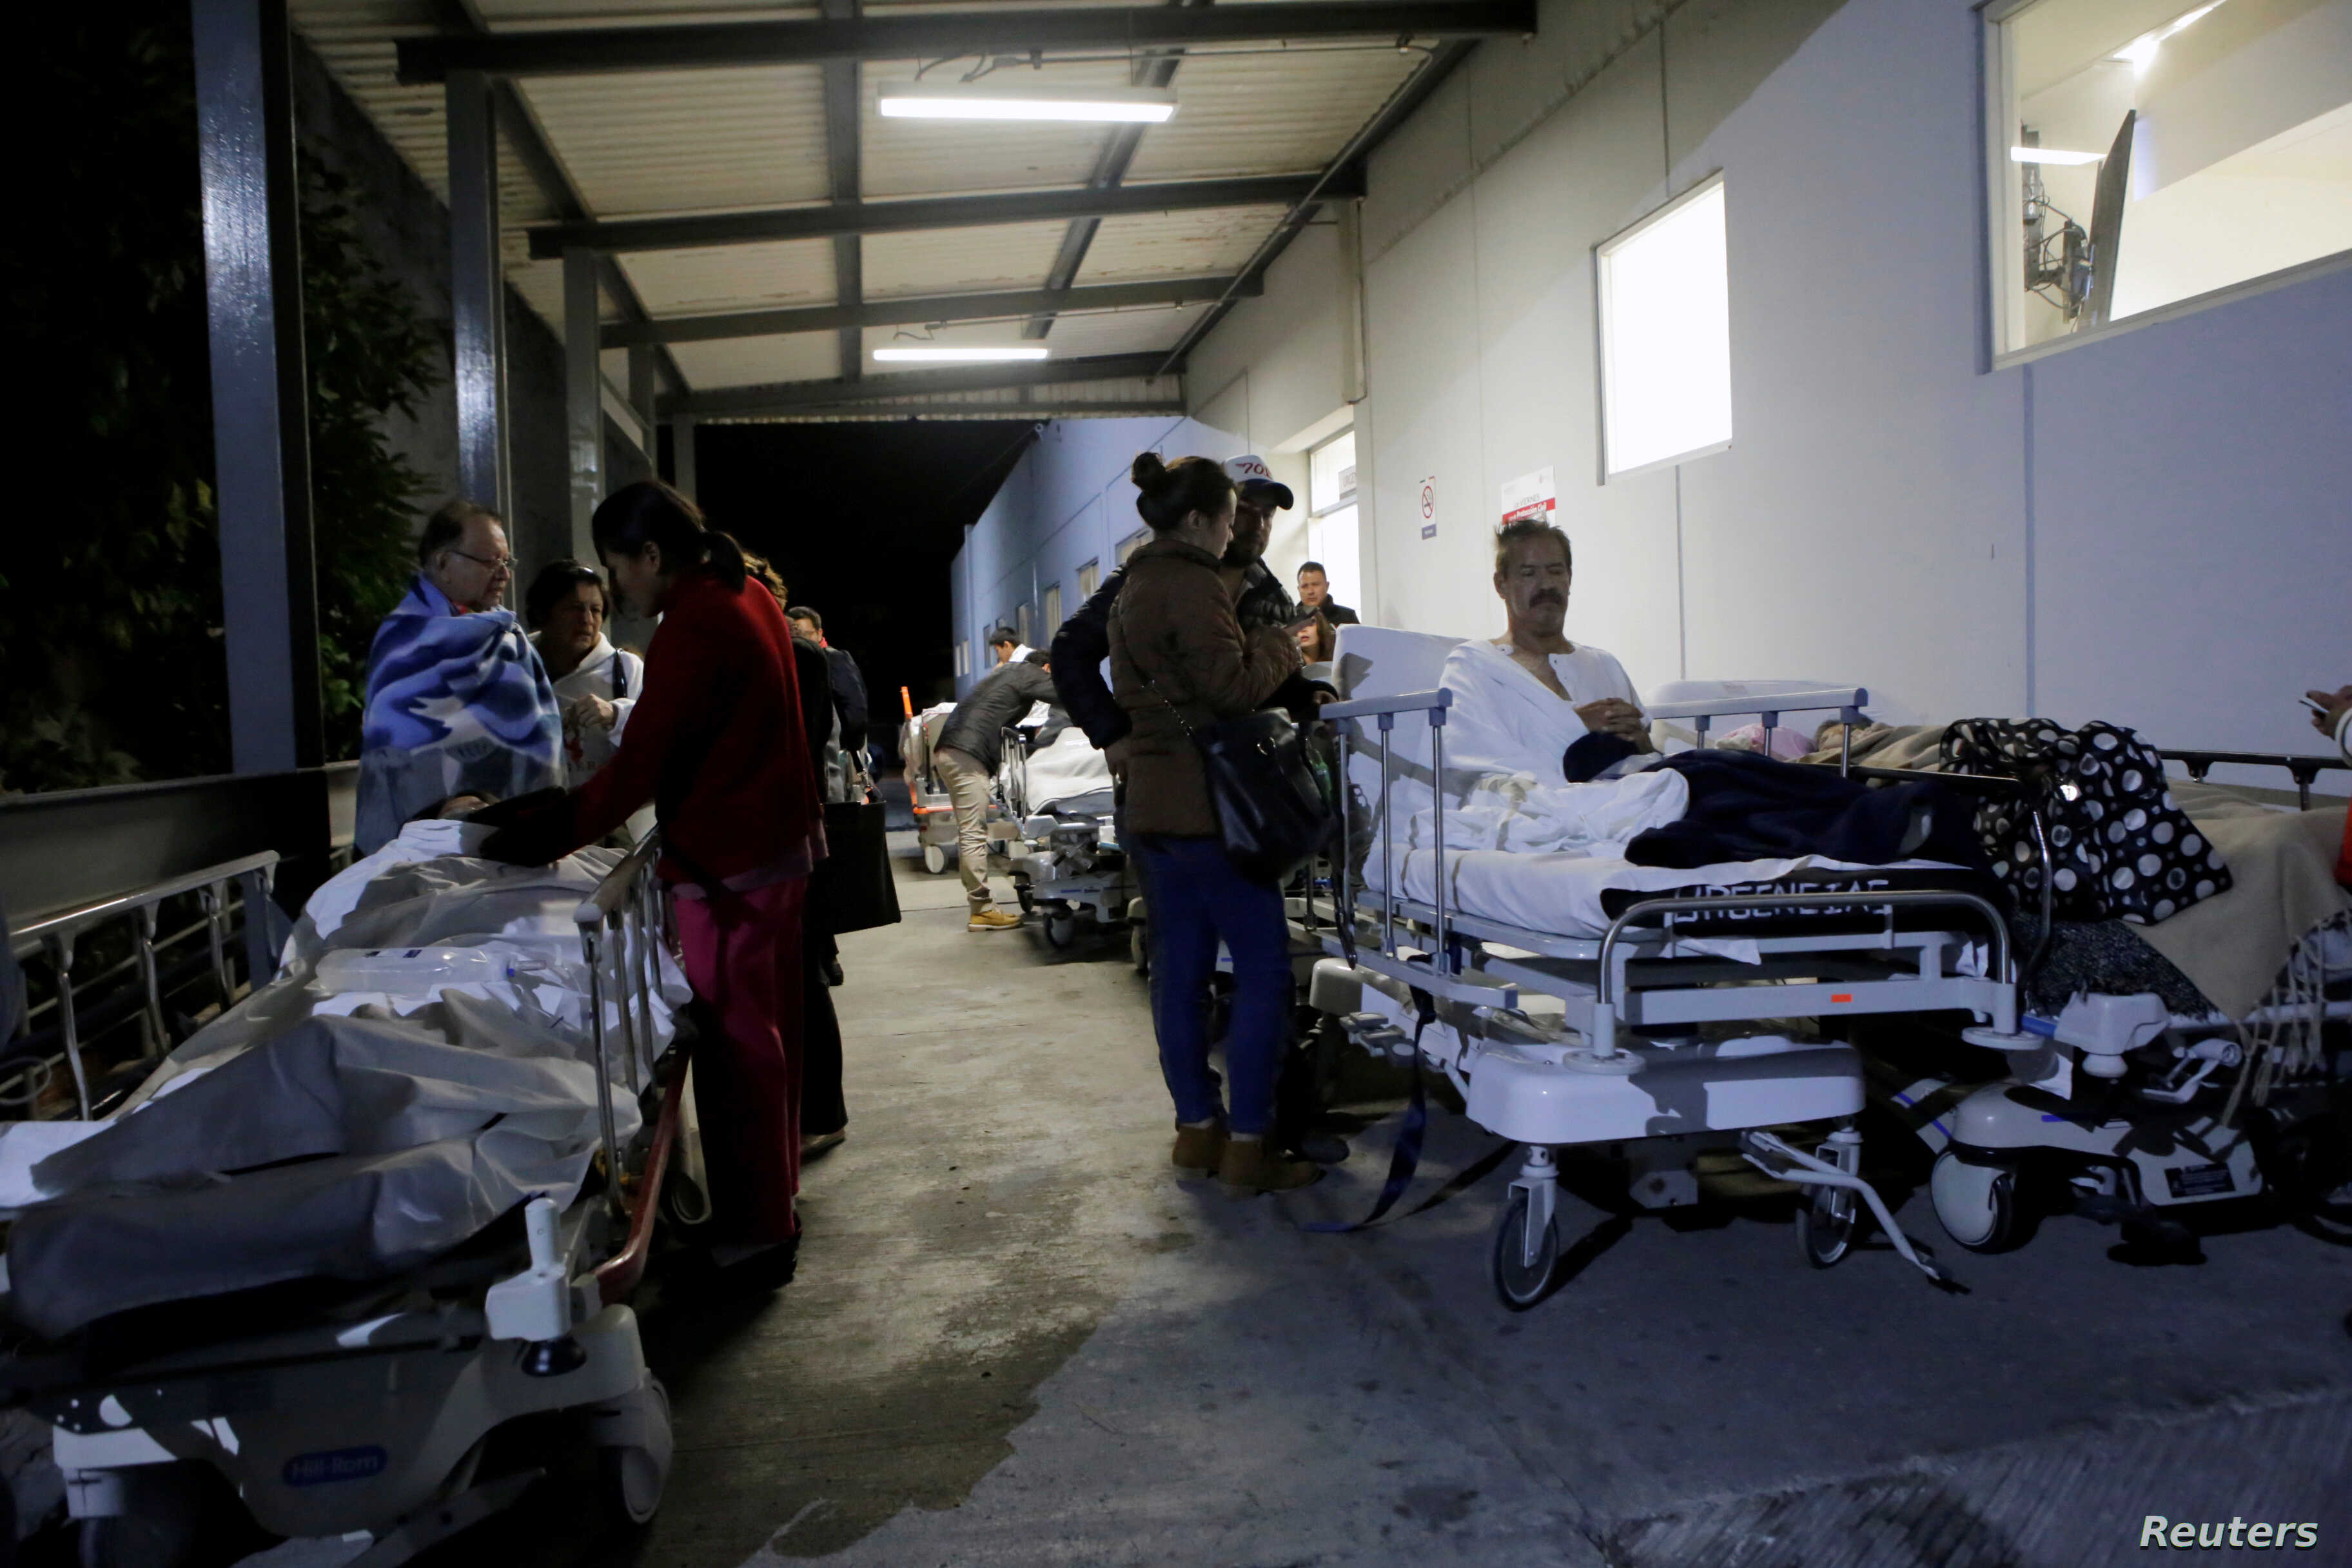 Patients and family members are seen outside the Institute for Social Security and Services for State Workers (ISSSTE) after an earthquake struck off the southern coast of Mexico late Thursday, in Puebla, Mexico, Sept. 8, 2017.